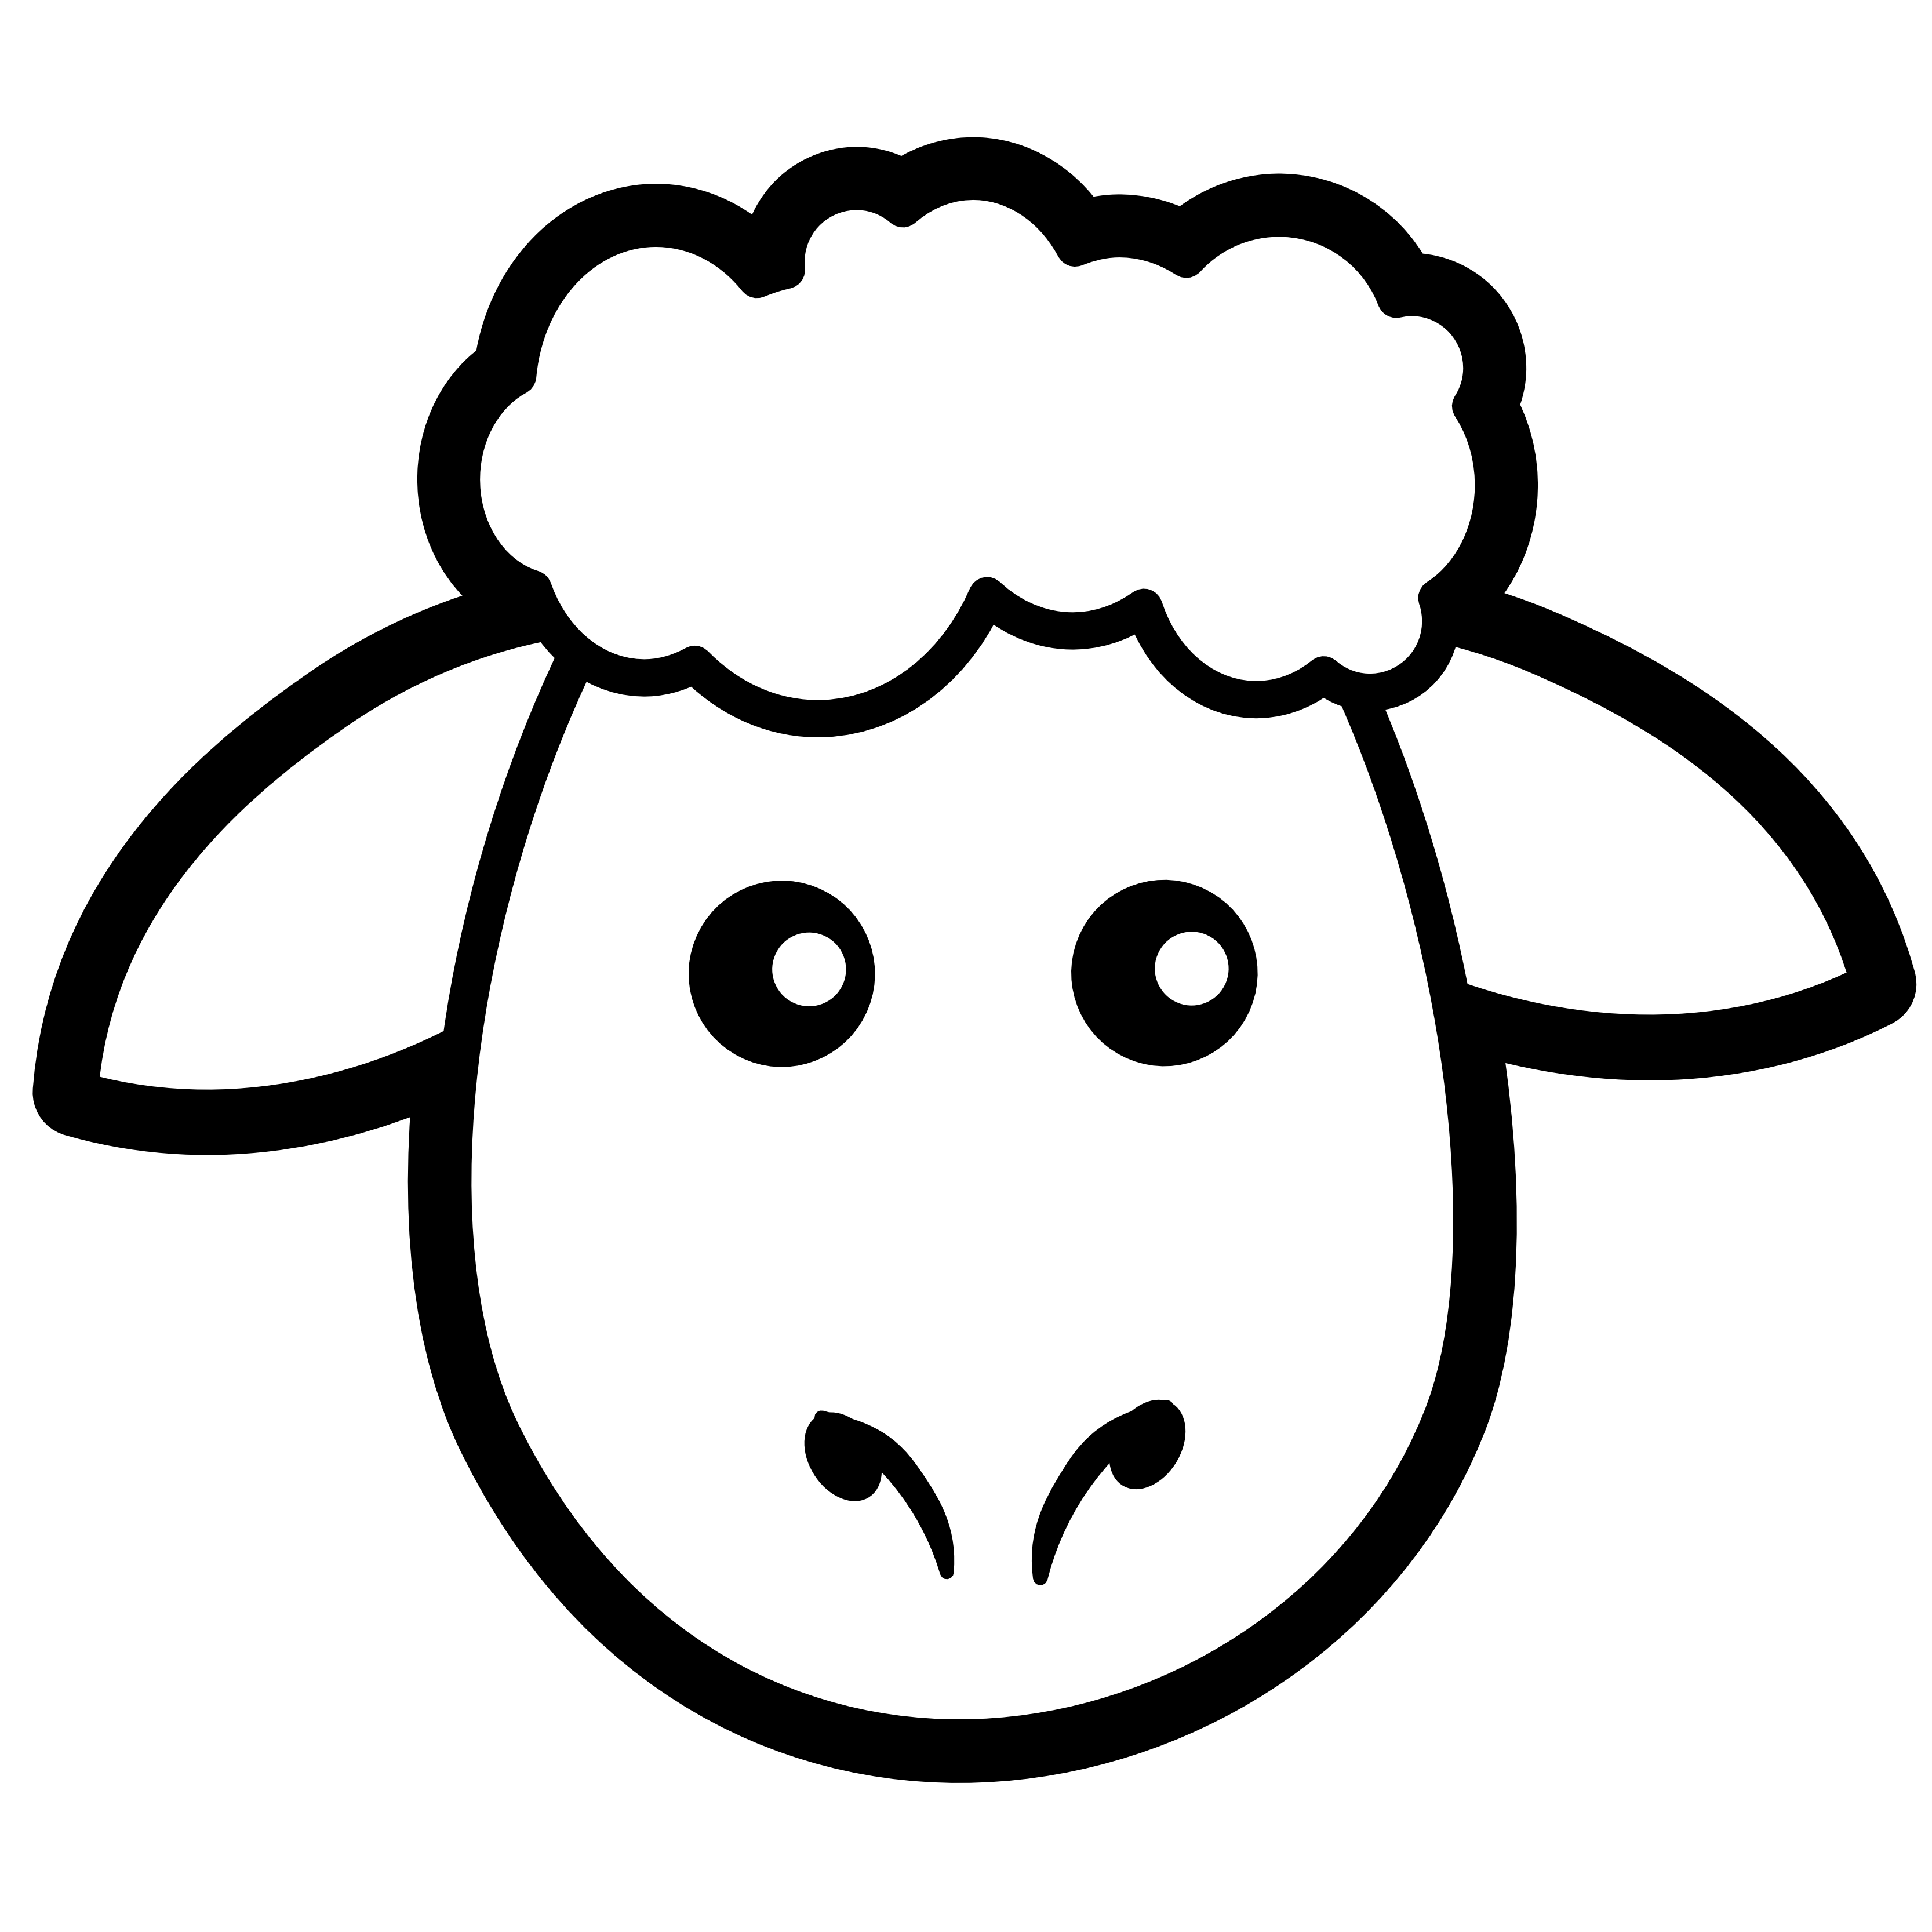 Line Drawing Images Of Sheep : Clip art sheep cliparts